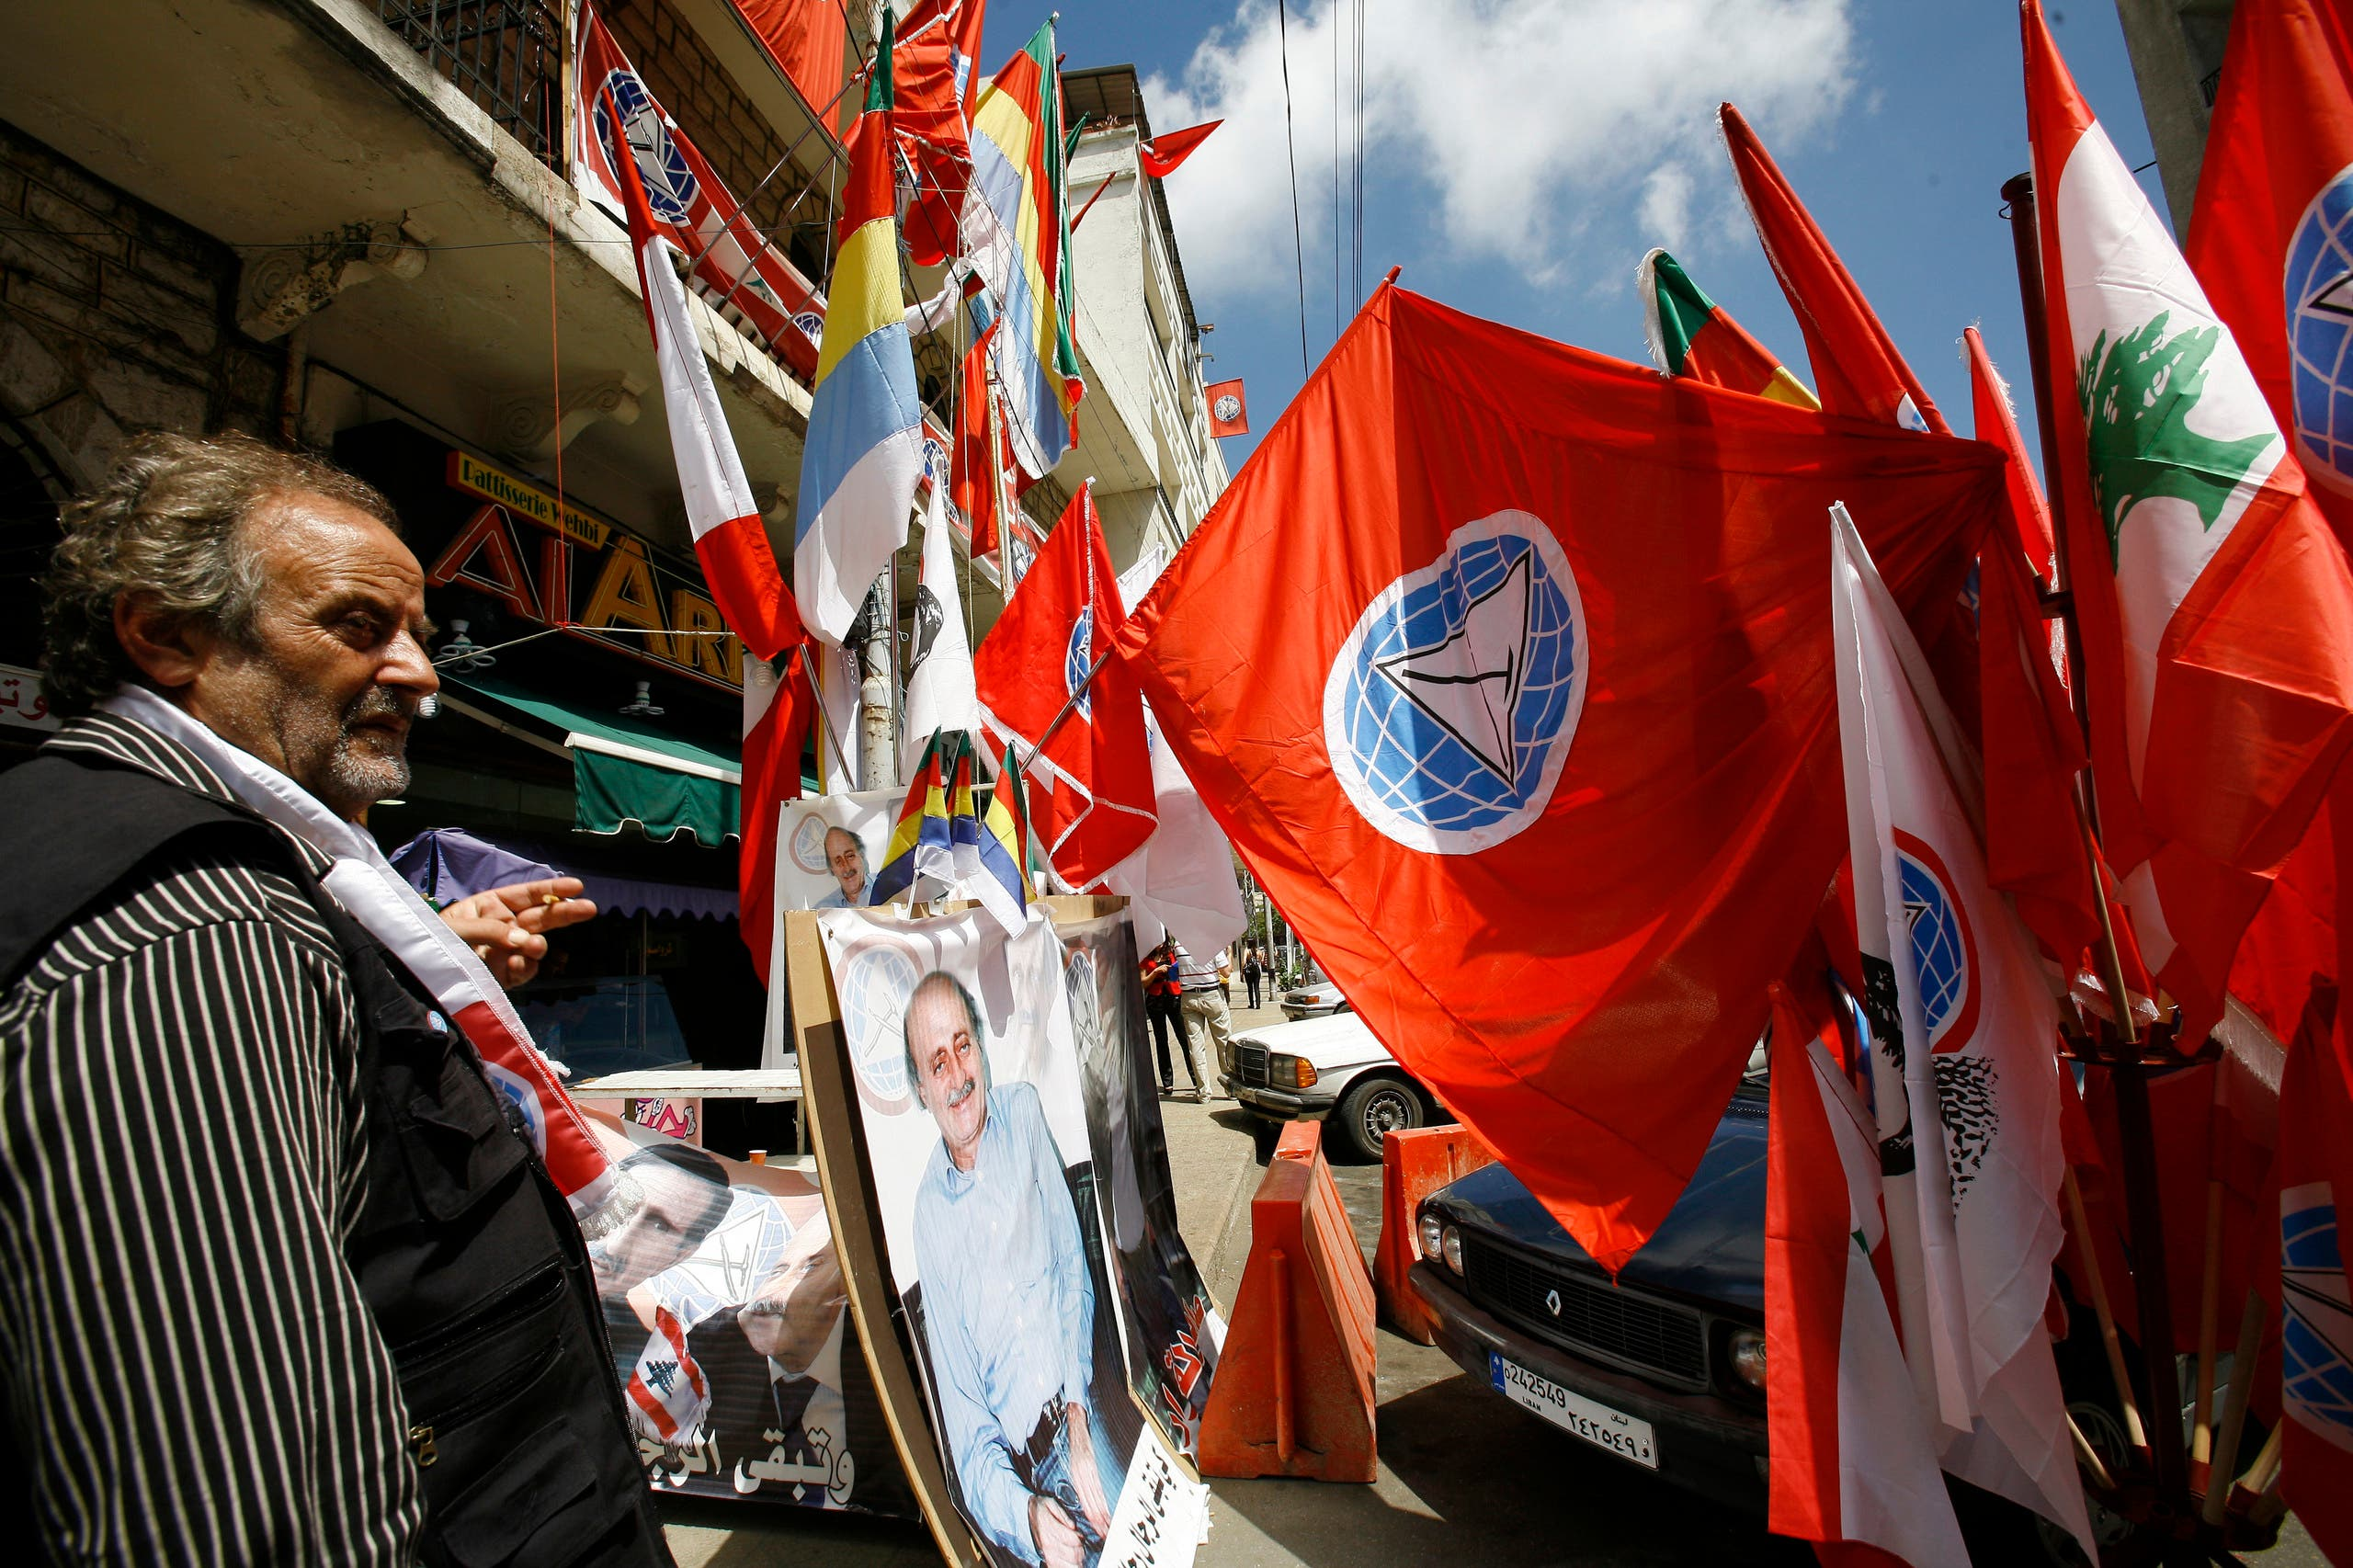 A Lebanese Druze vendor displays Progressive Socialist Party flags and pictures of Druze leader Walid Jumblatt in a street in Aley June 6, 2009. REUTERS/ Jamal Saidi (LEBANON ELECTIONS POLITICS)